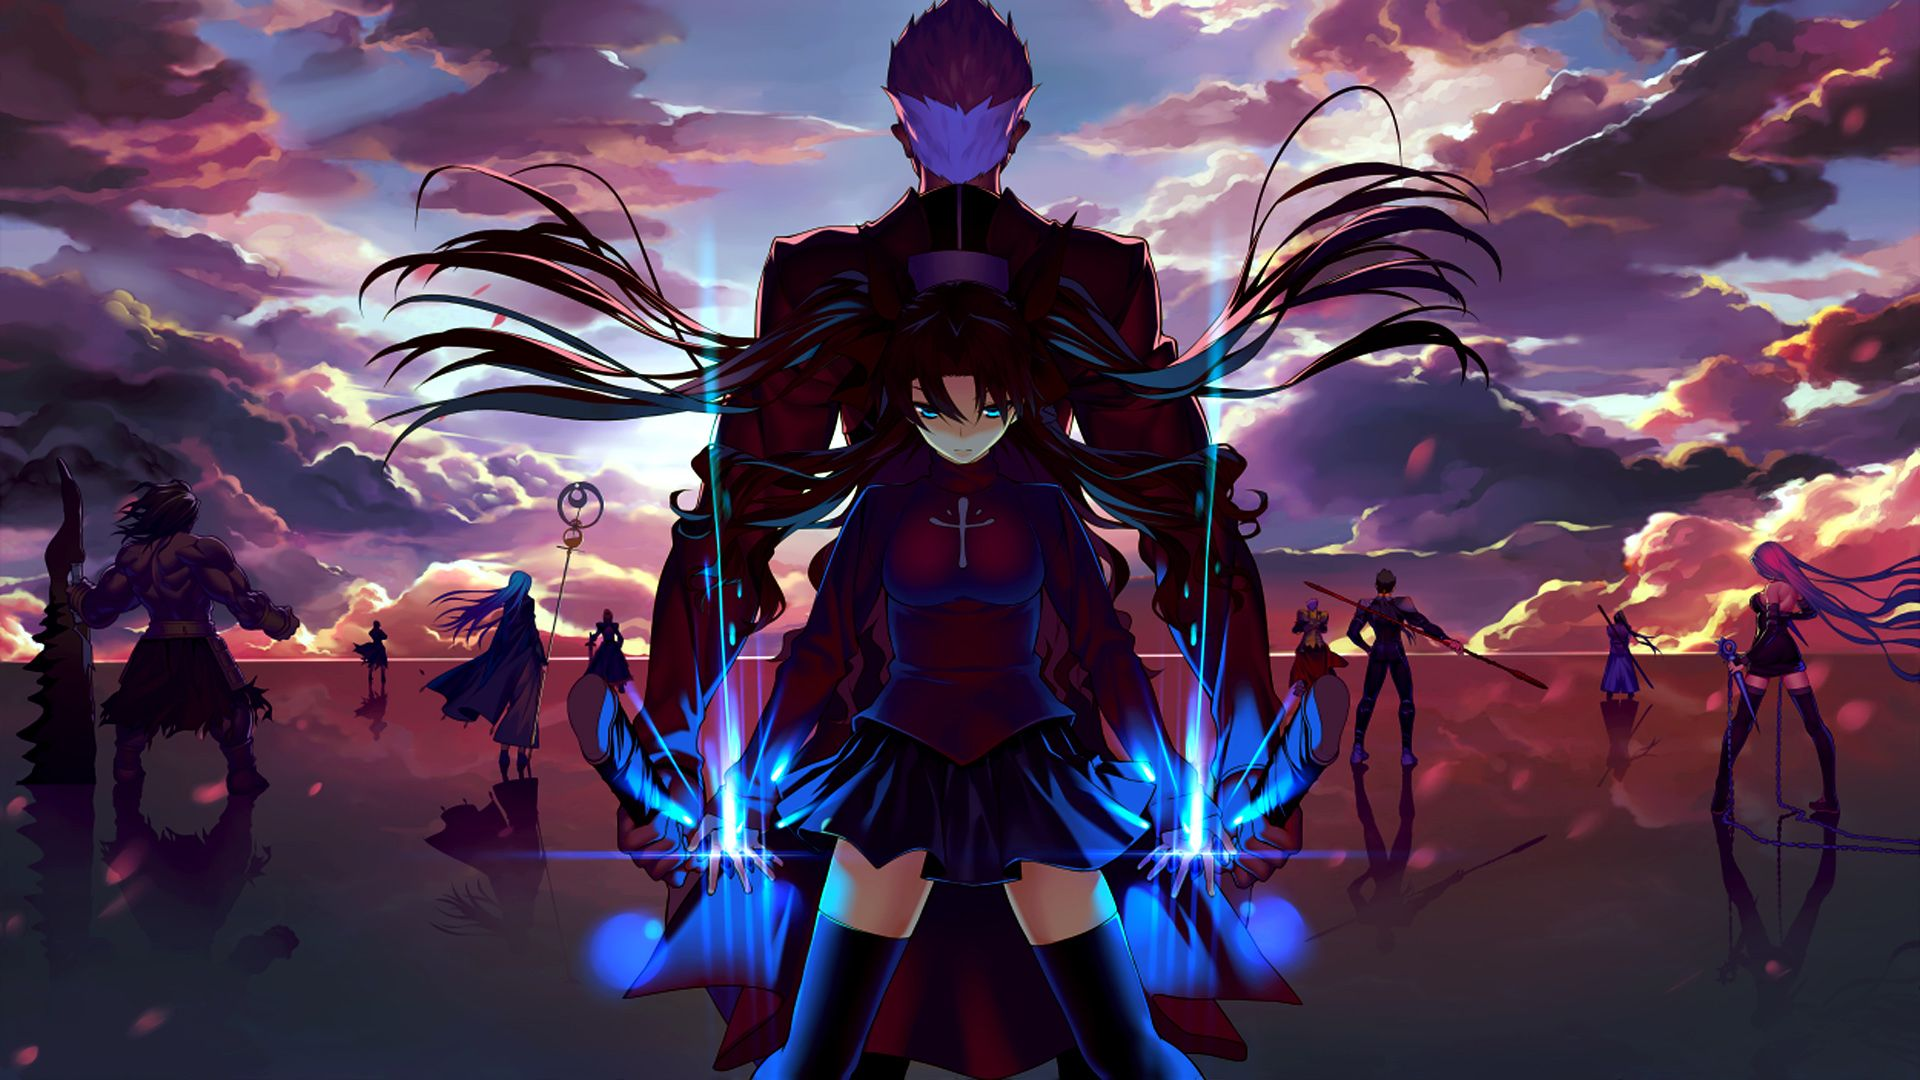 View, download, comment, and rate this 1920x1080 Fate/Stay Night: Unlimited Blade Works Wallpaper - Wallpaper Abyss